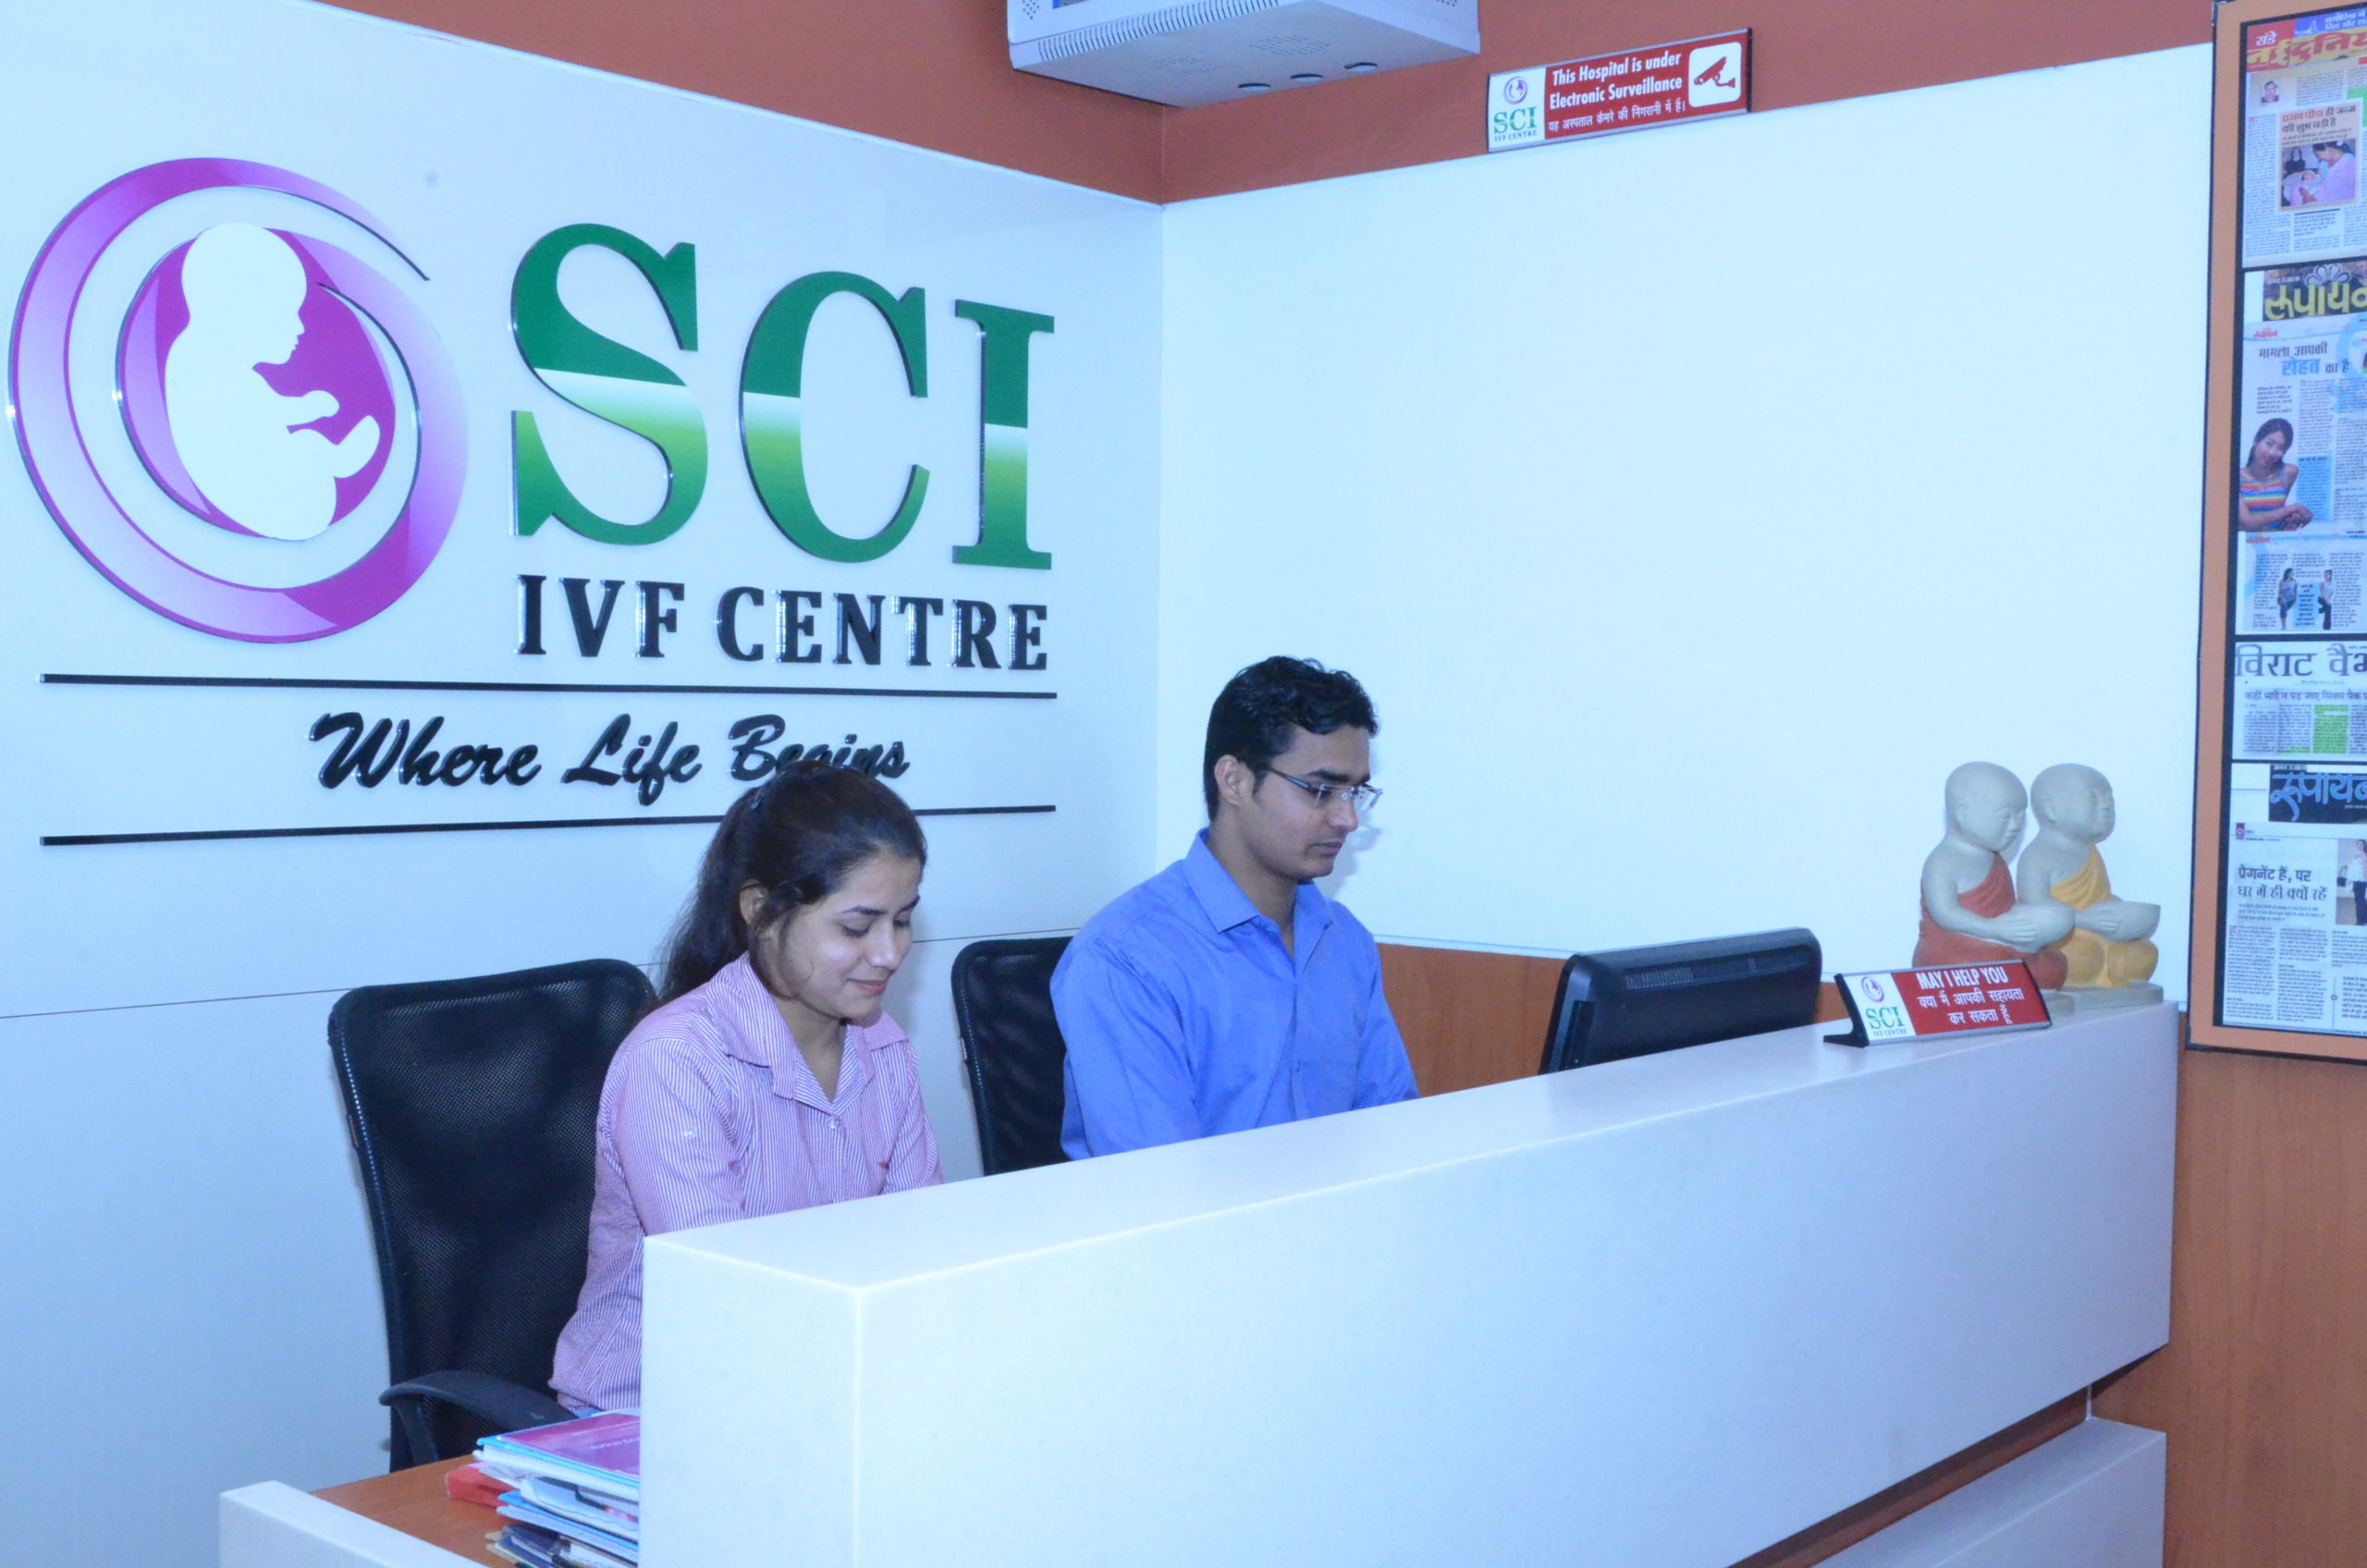 sci ivf centre reception